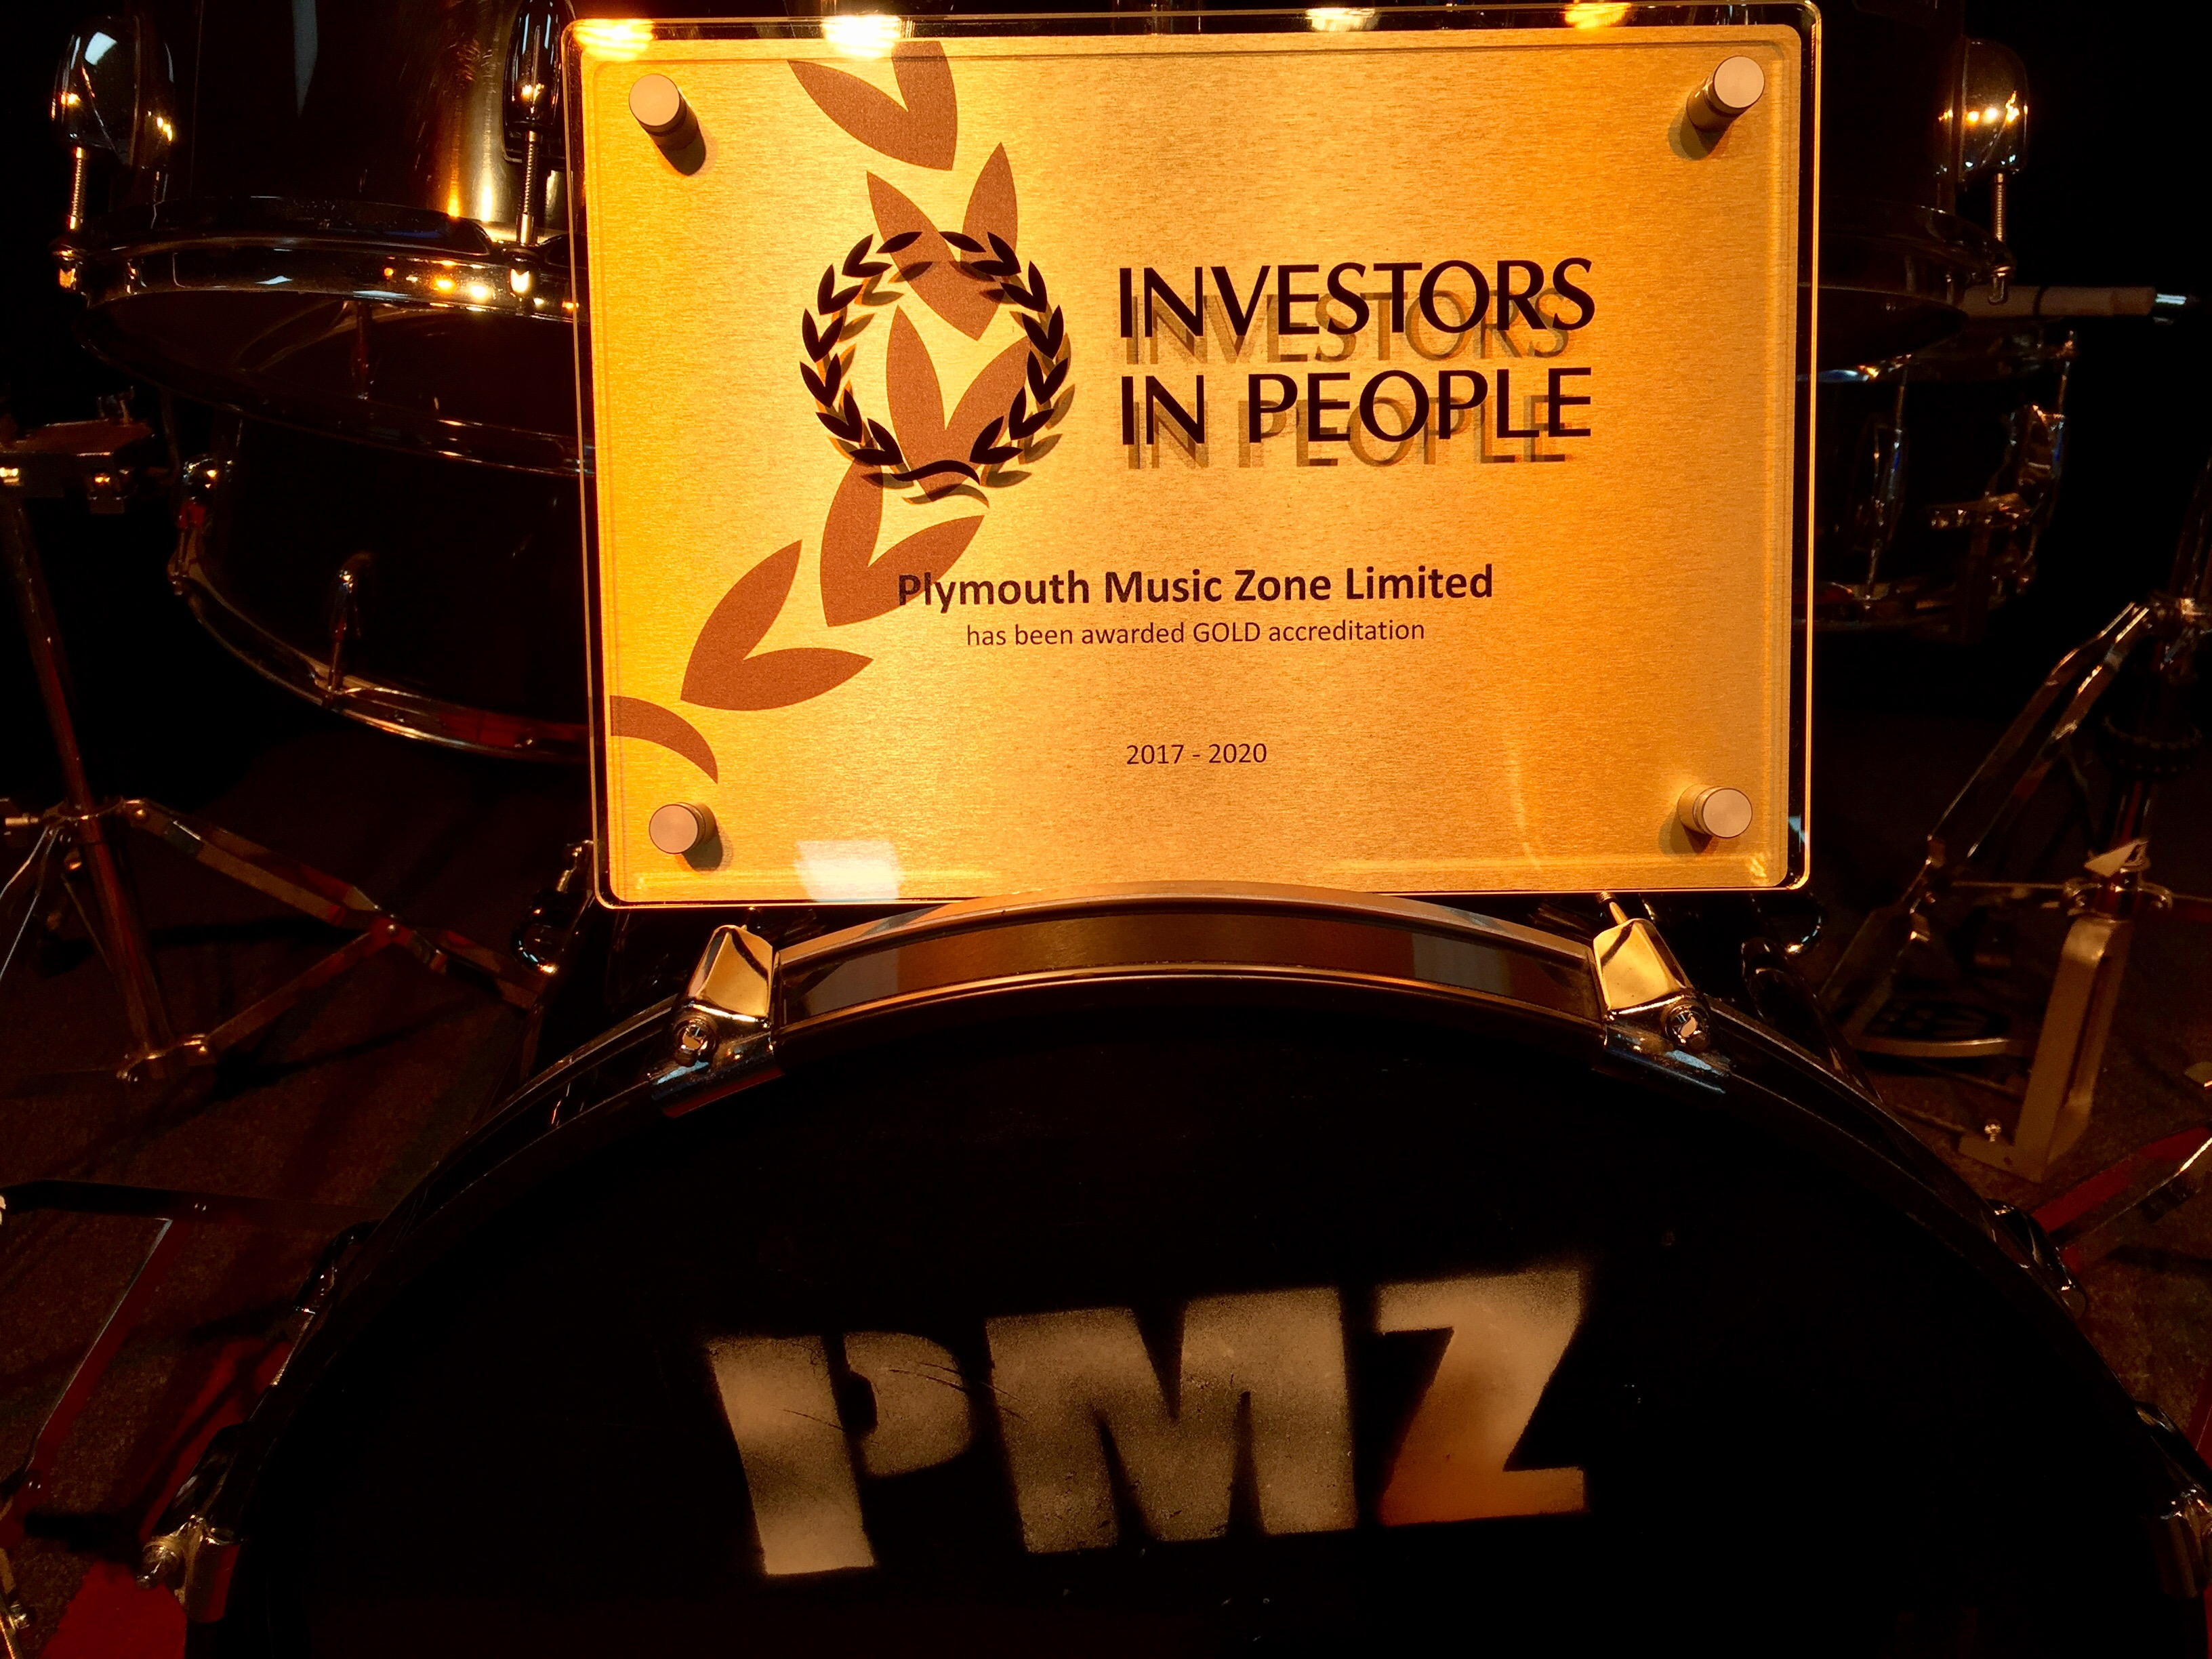 Gold Investors in People Award on drum